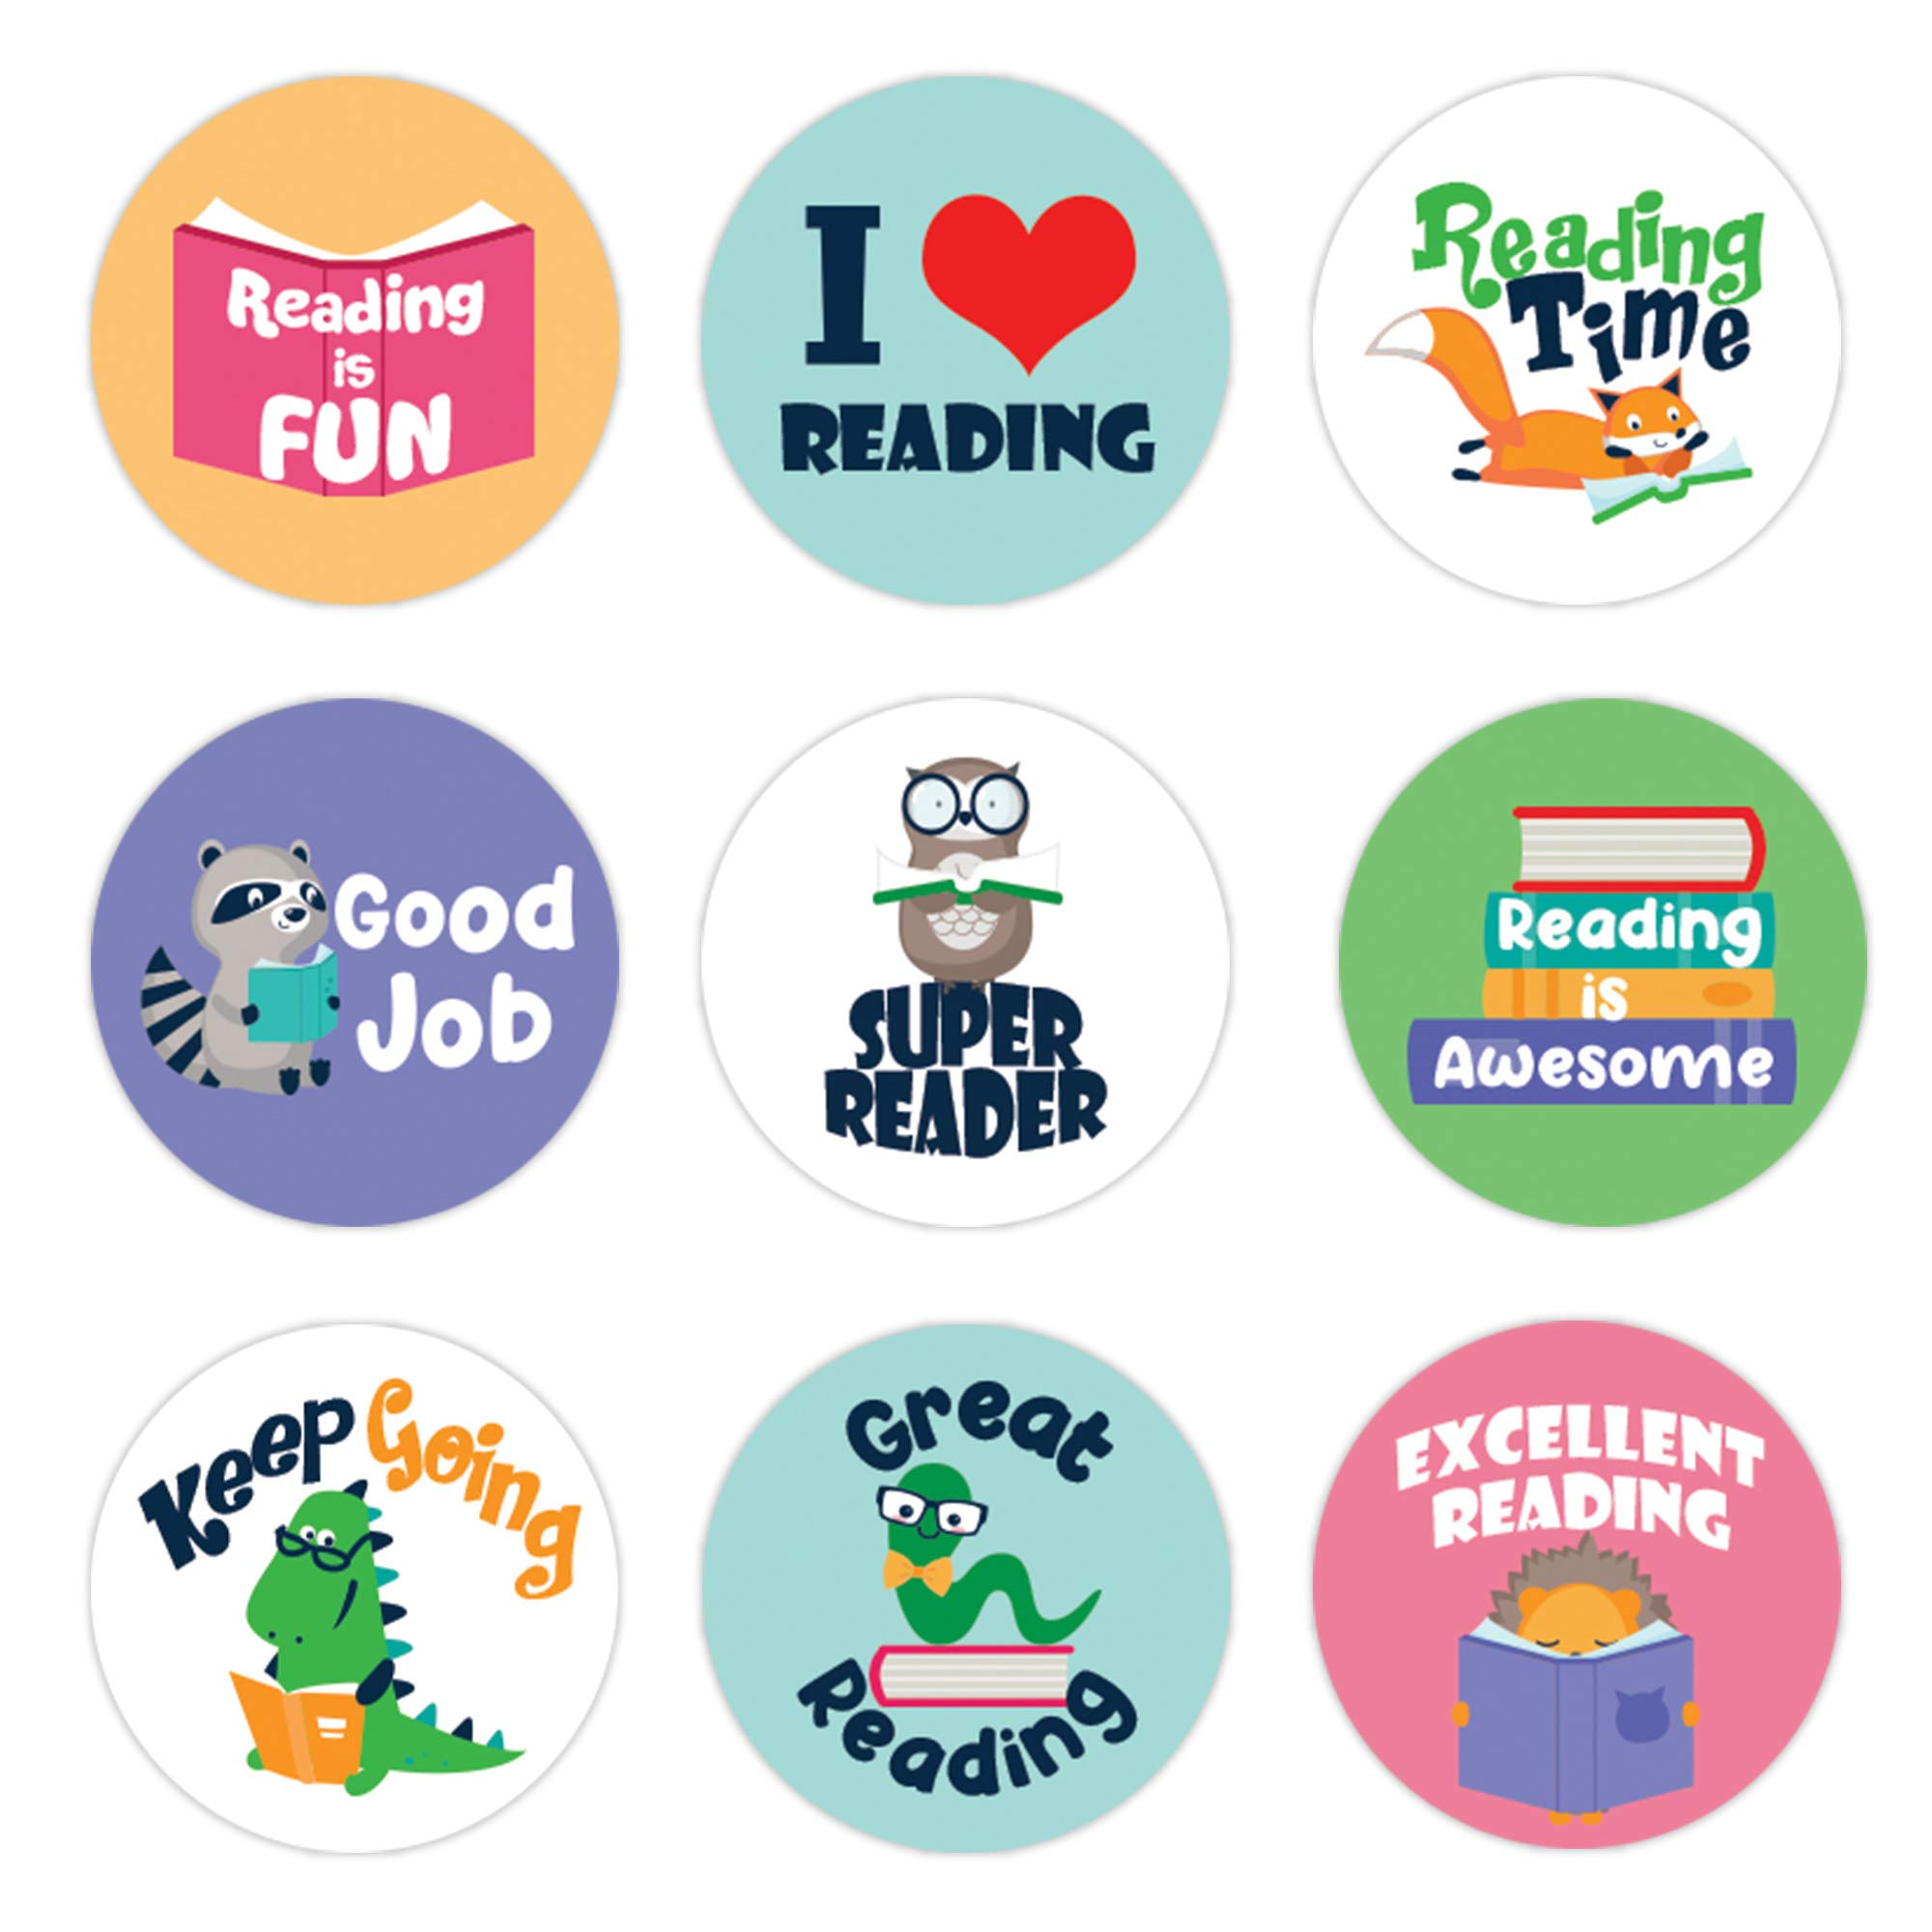 Eureka Classroom Decorations Cat in The Hat Reading Stickers for Kids and Educational Fun 120pc